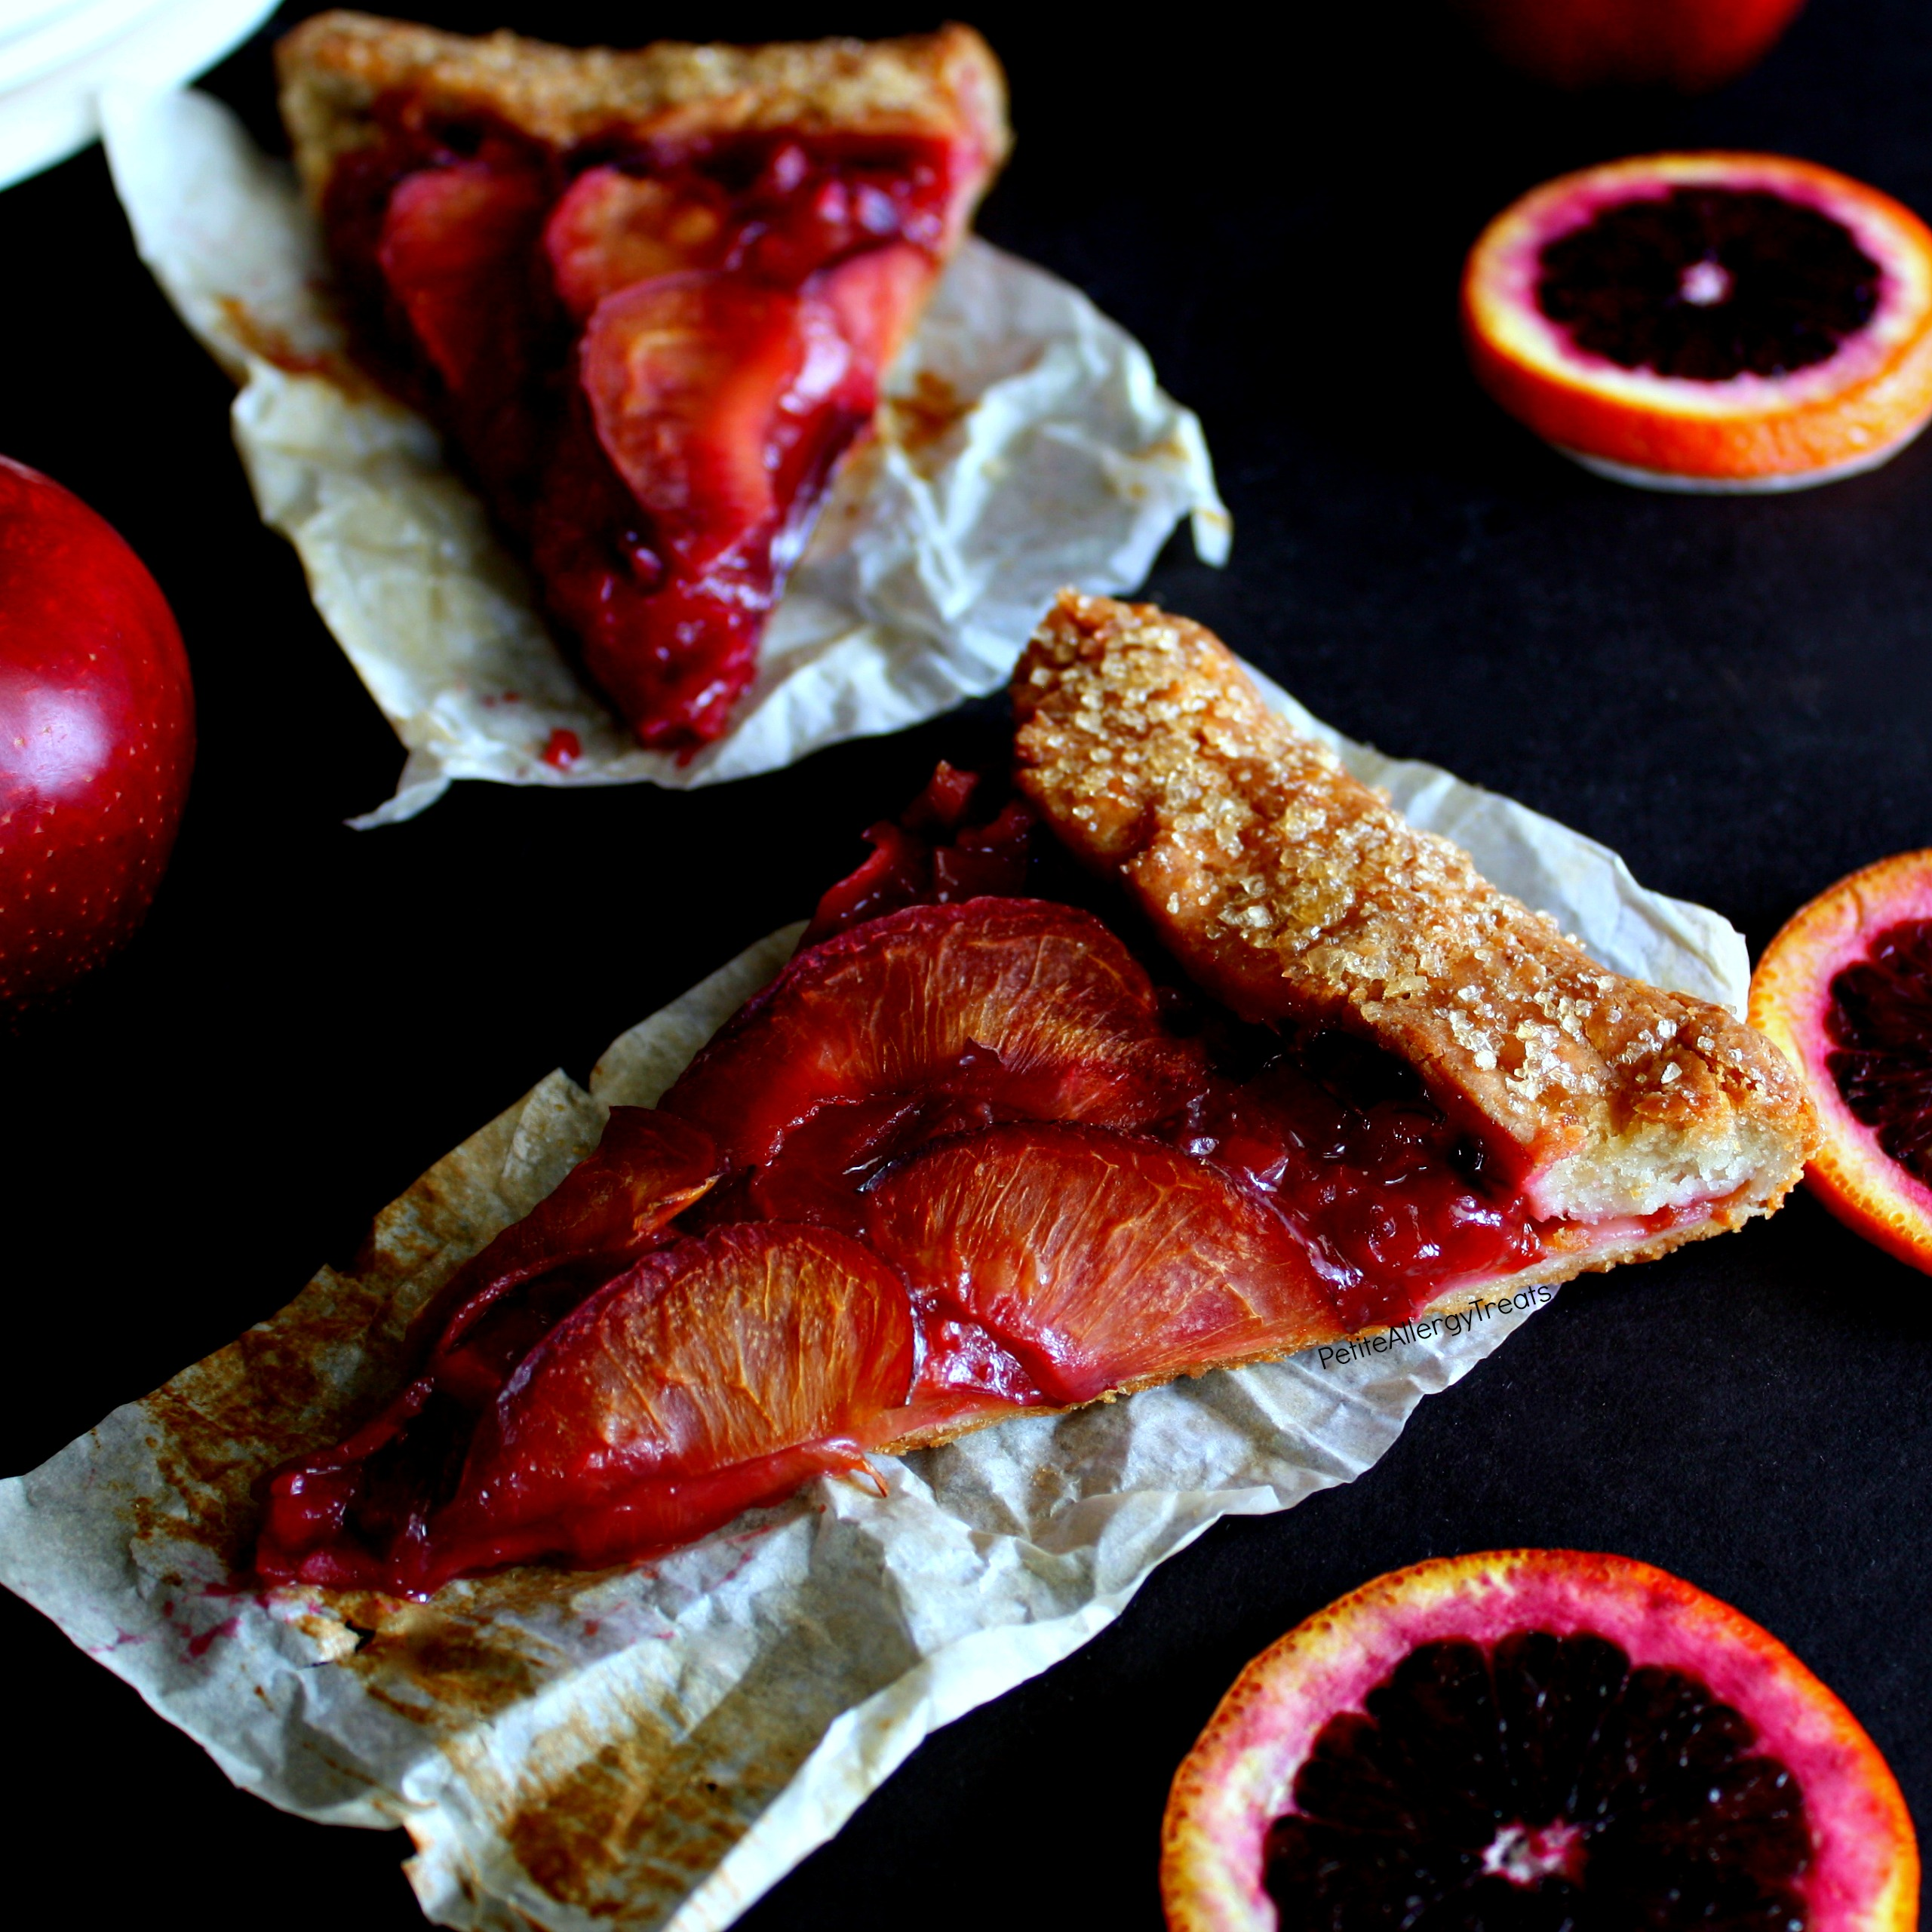 Gluten Free Orange Plum Pie Recipe (vegan dairy free)- Easy rustic galette filled with sweet plums and tart blood oranges